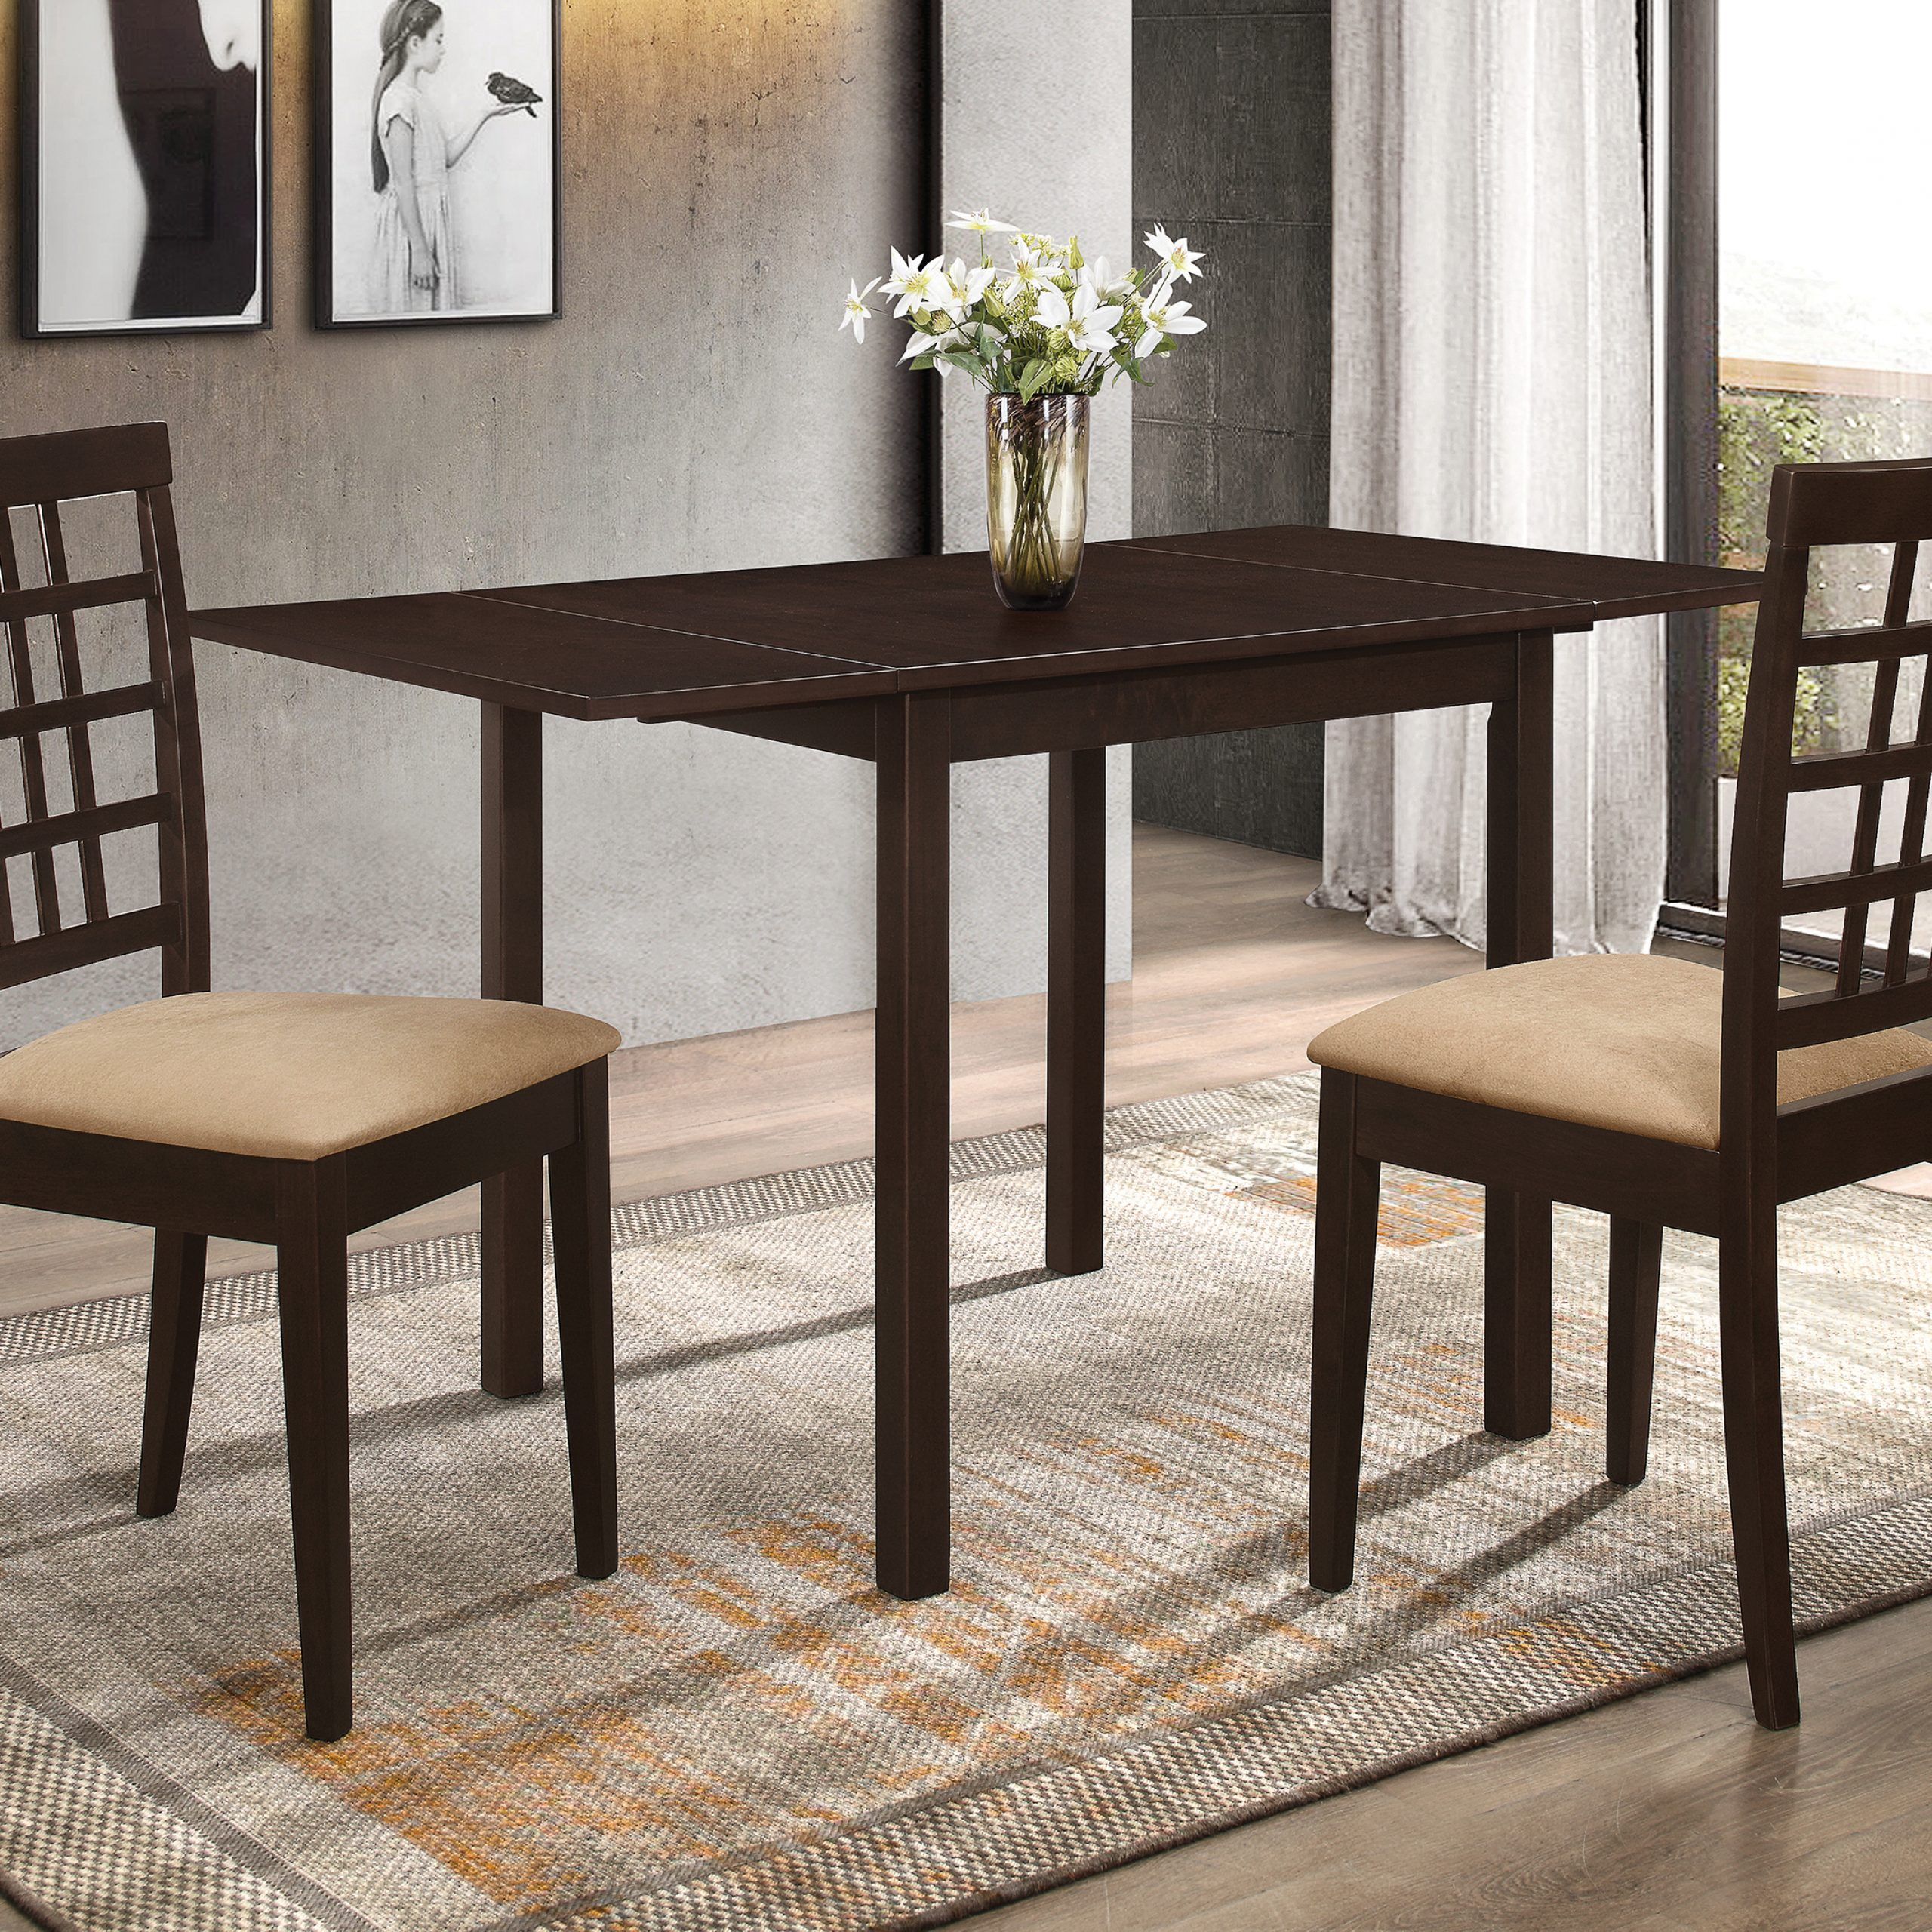 Well Liked Kelso Rectangular Dining Table With Drop Leaf Cappuccino Inside Transitional 4 Seating Drop Leaf Casual Dining Tables (Gallery 6 of 30)